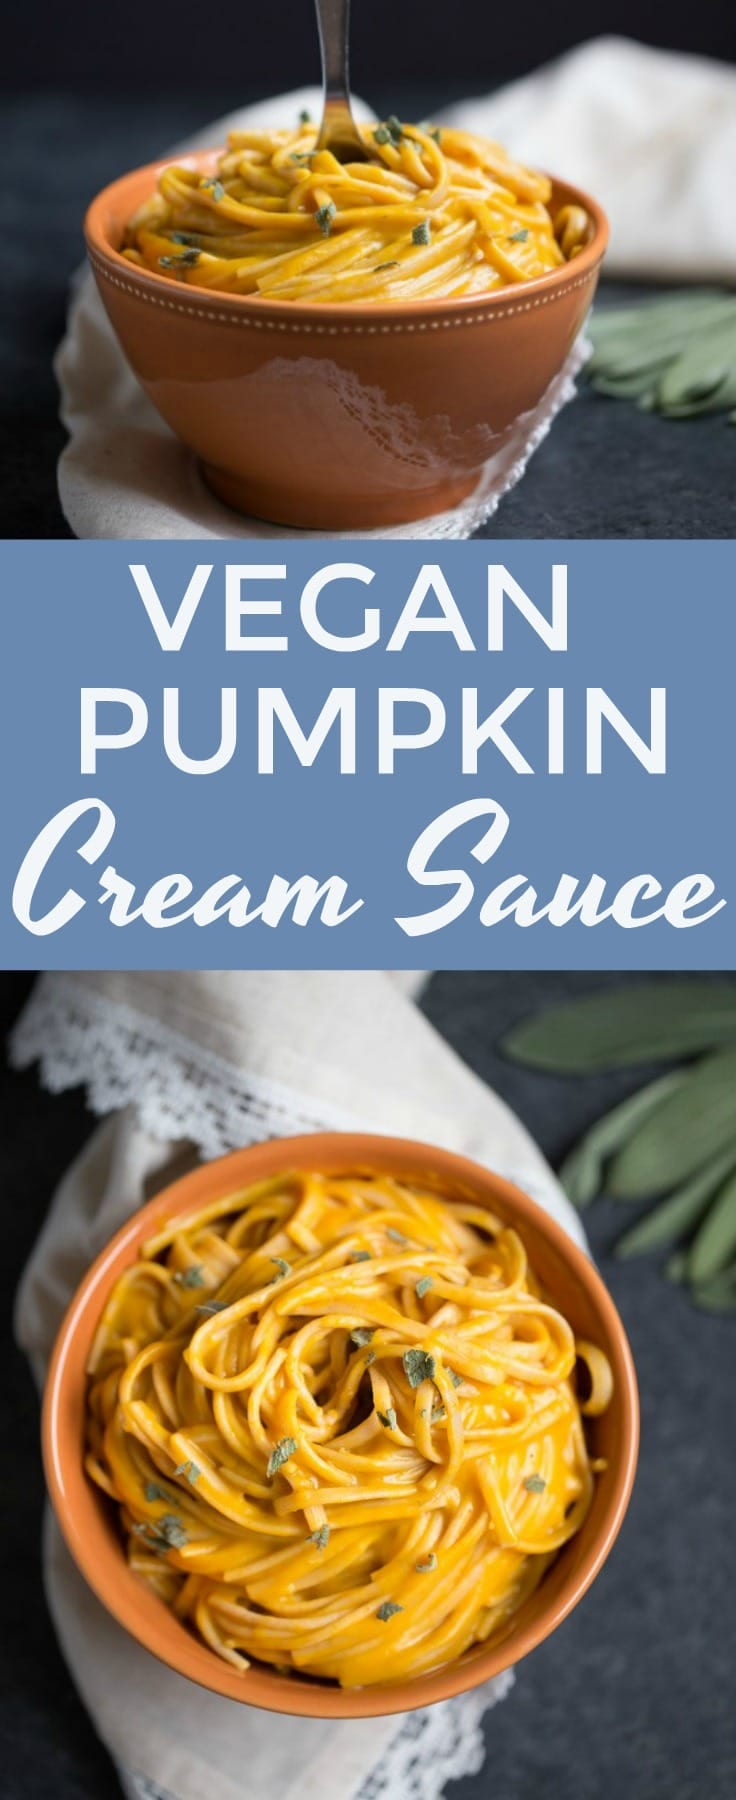 The creamiest #vegan pumpkin cream sauce you'll ever try! Perfect for pasta, dipping, pizza or burritos! #pumpkin #savory #vegetarian